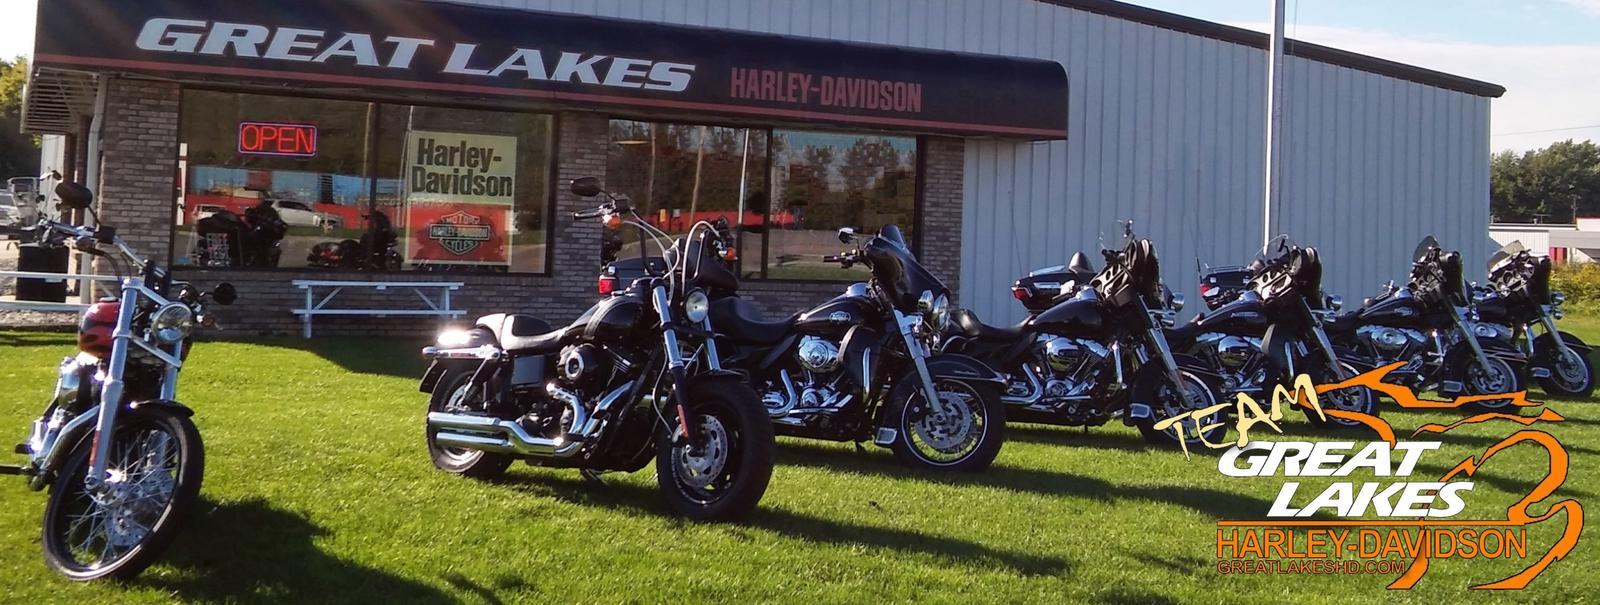 great lake harley davidson